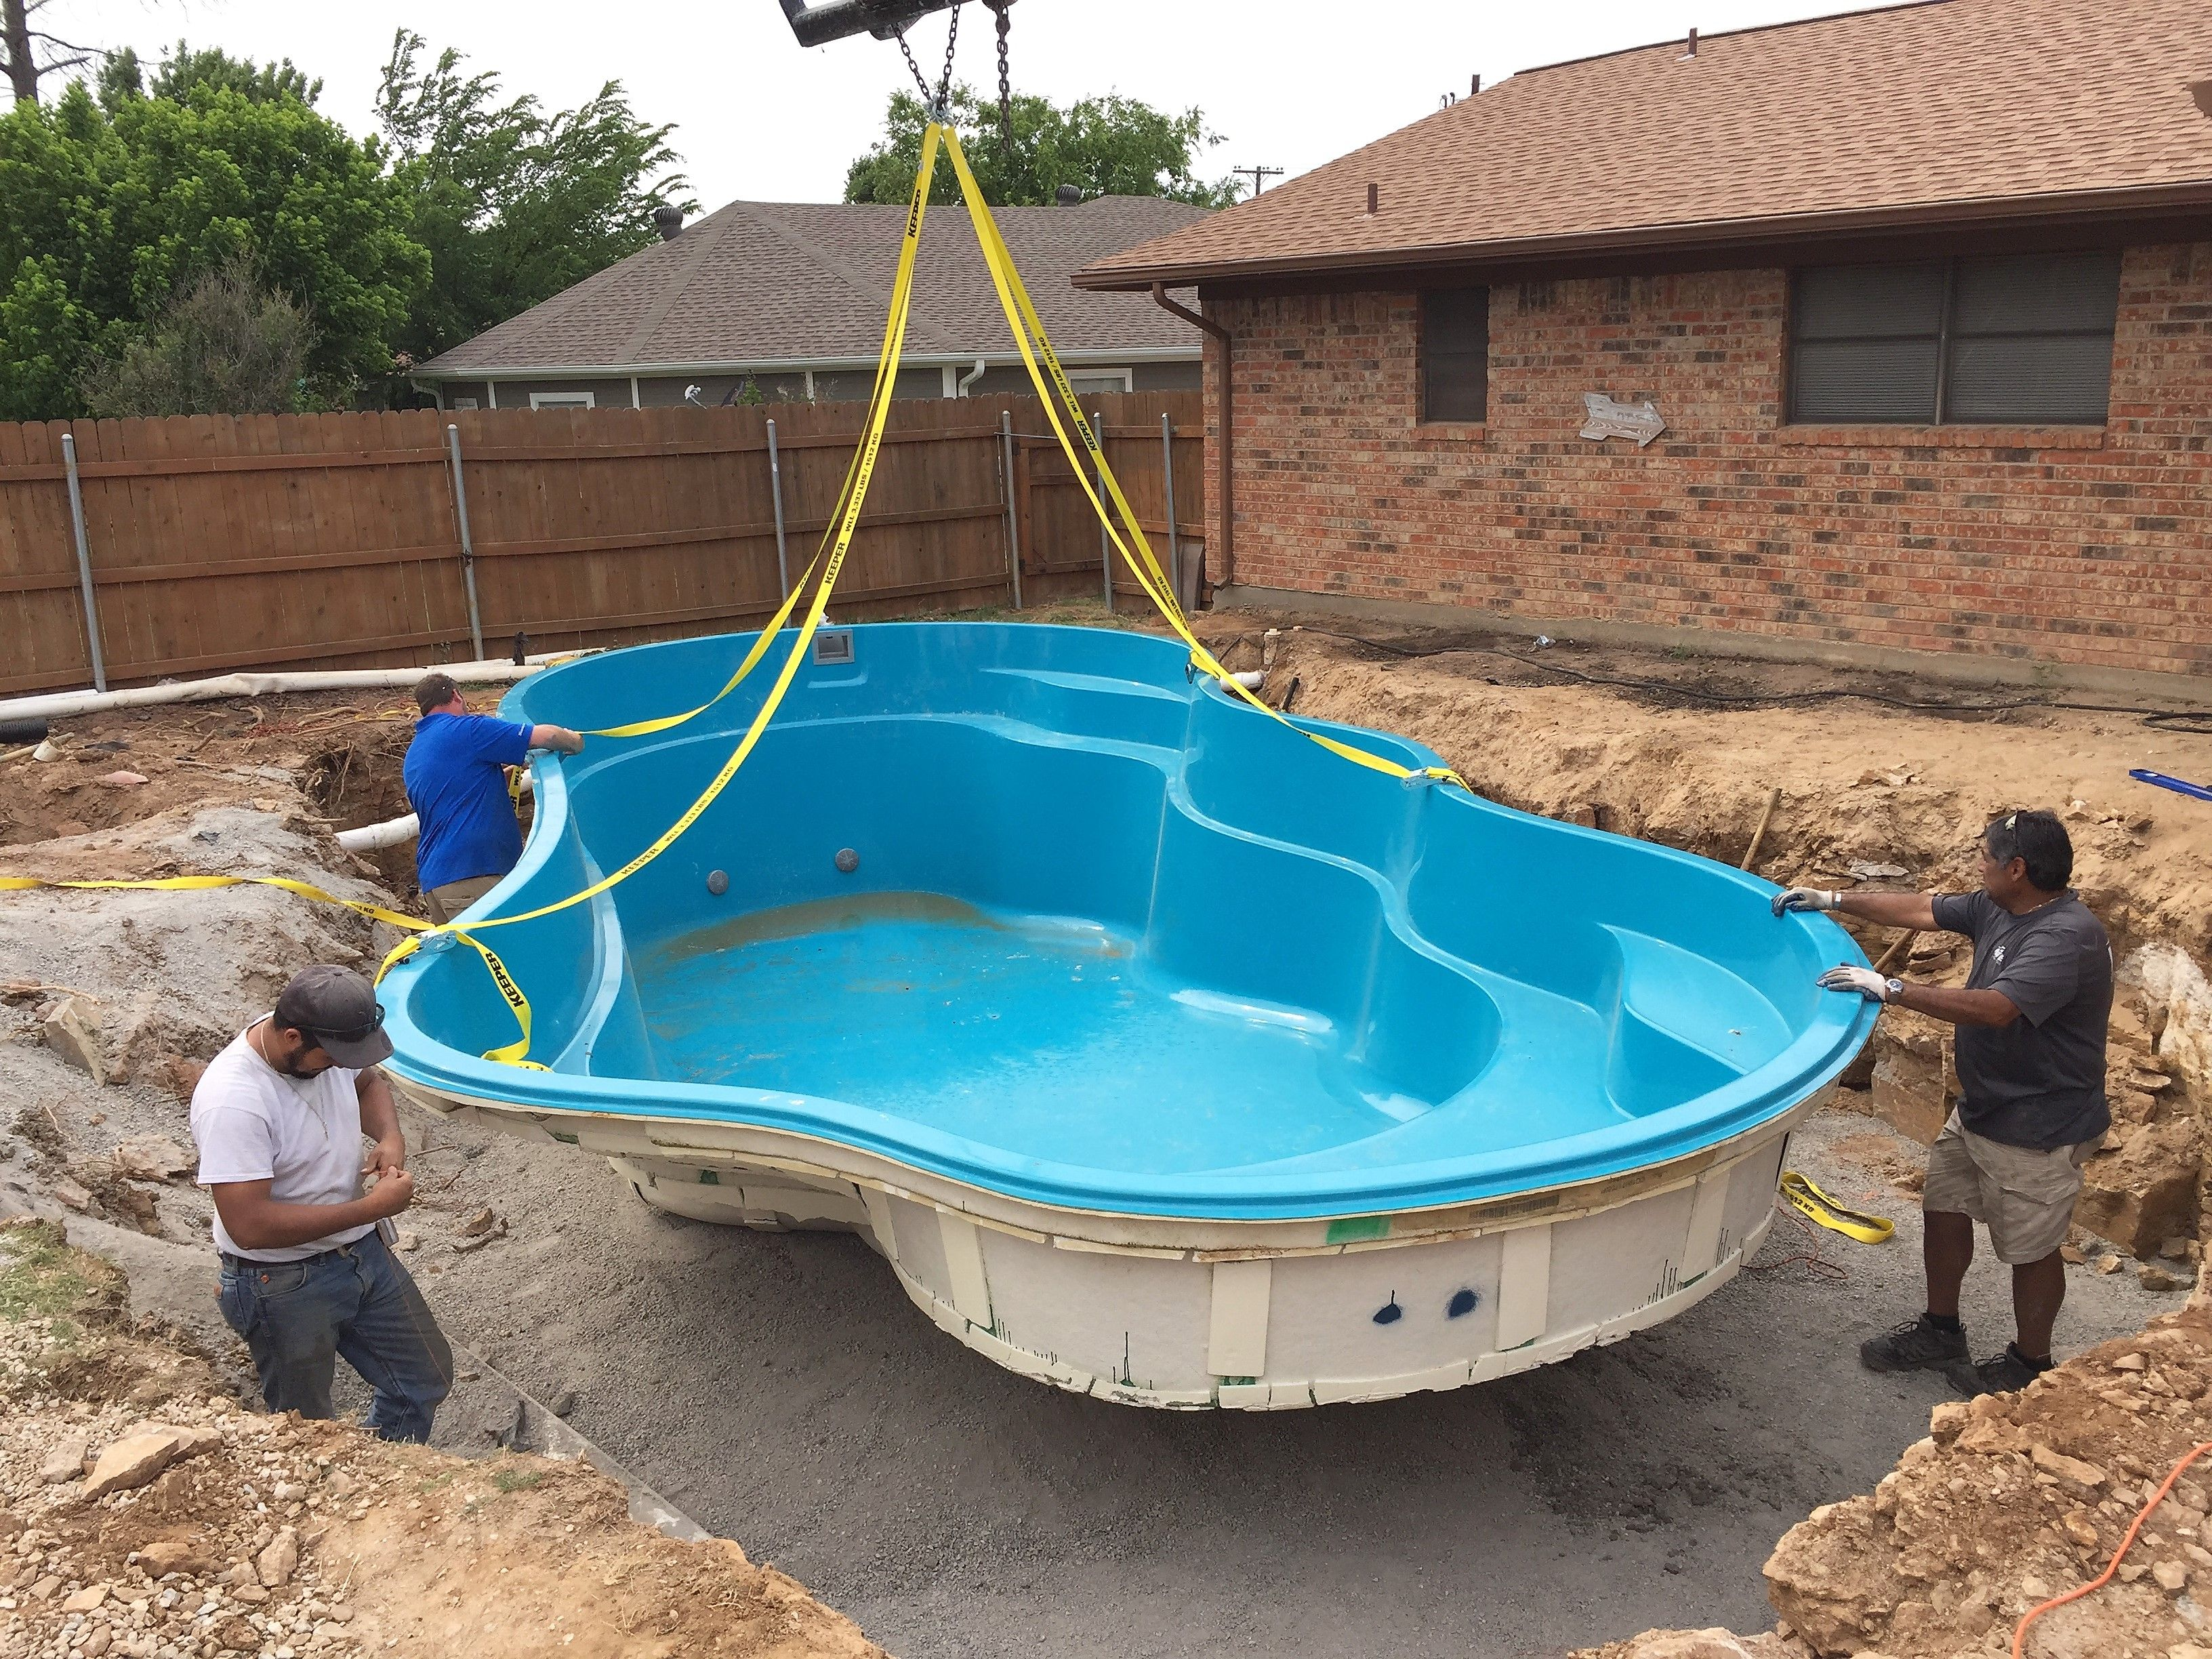 Pin on Imagine Pools - fiberglass swimming pools